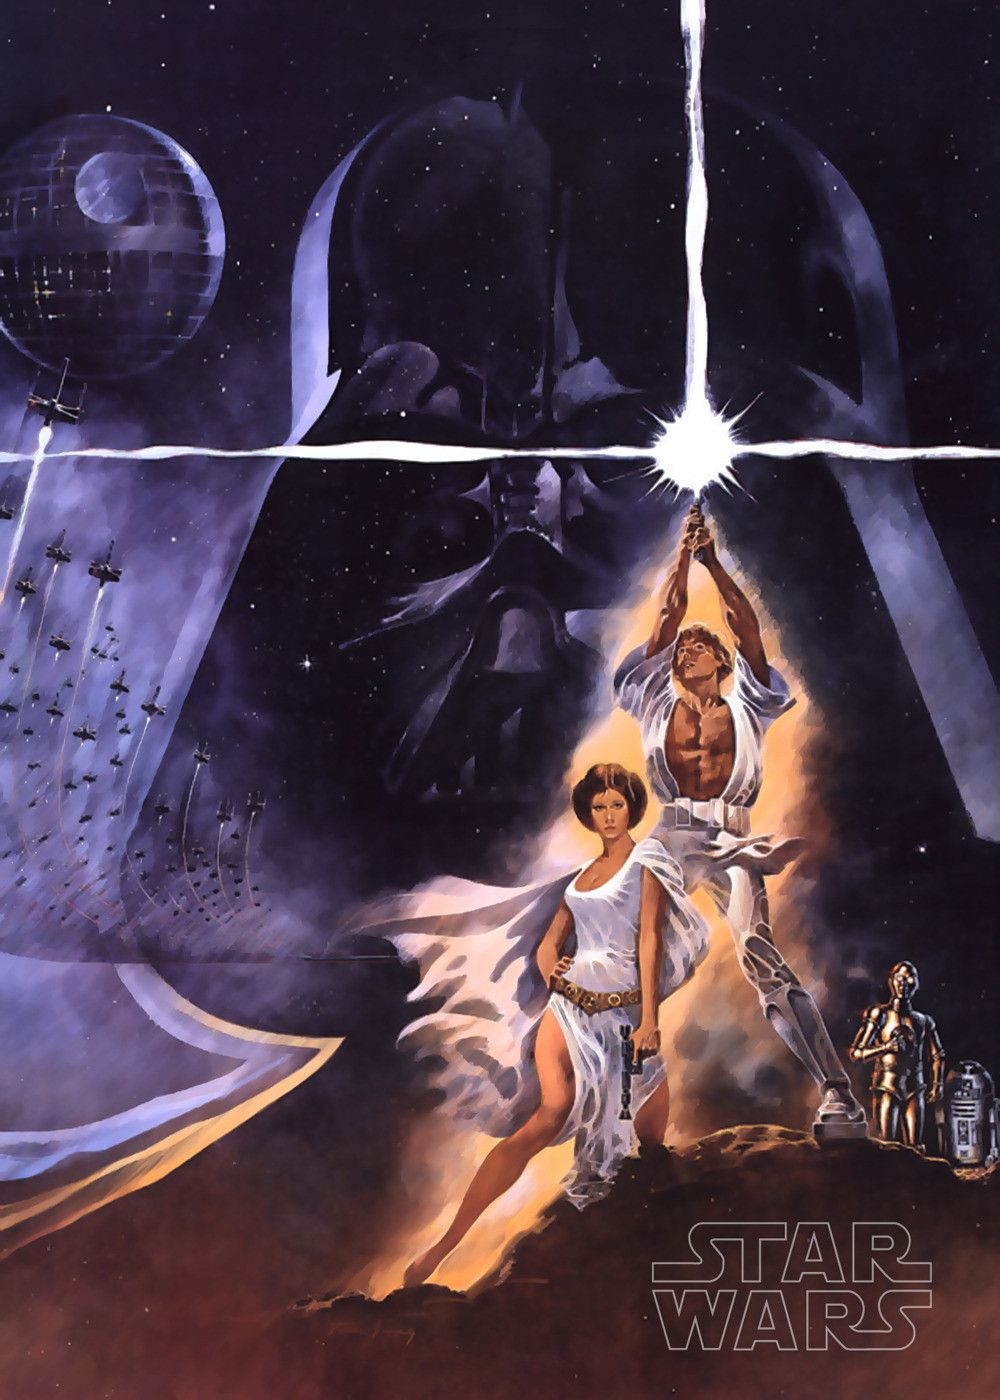 Star Wars Episode Iv A New Hope Star Wars Movies Posters